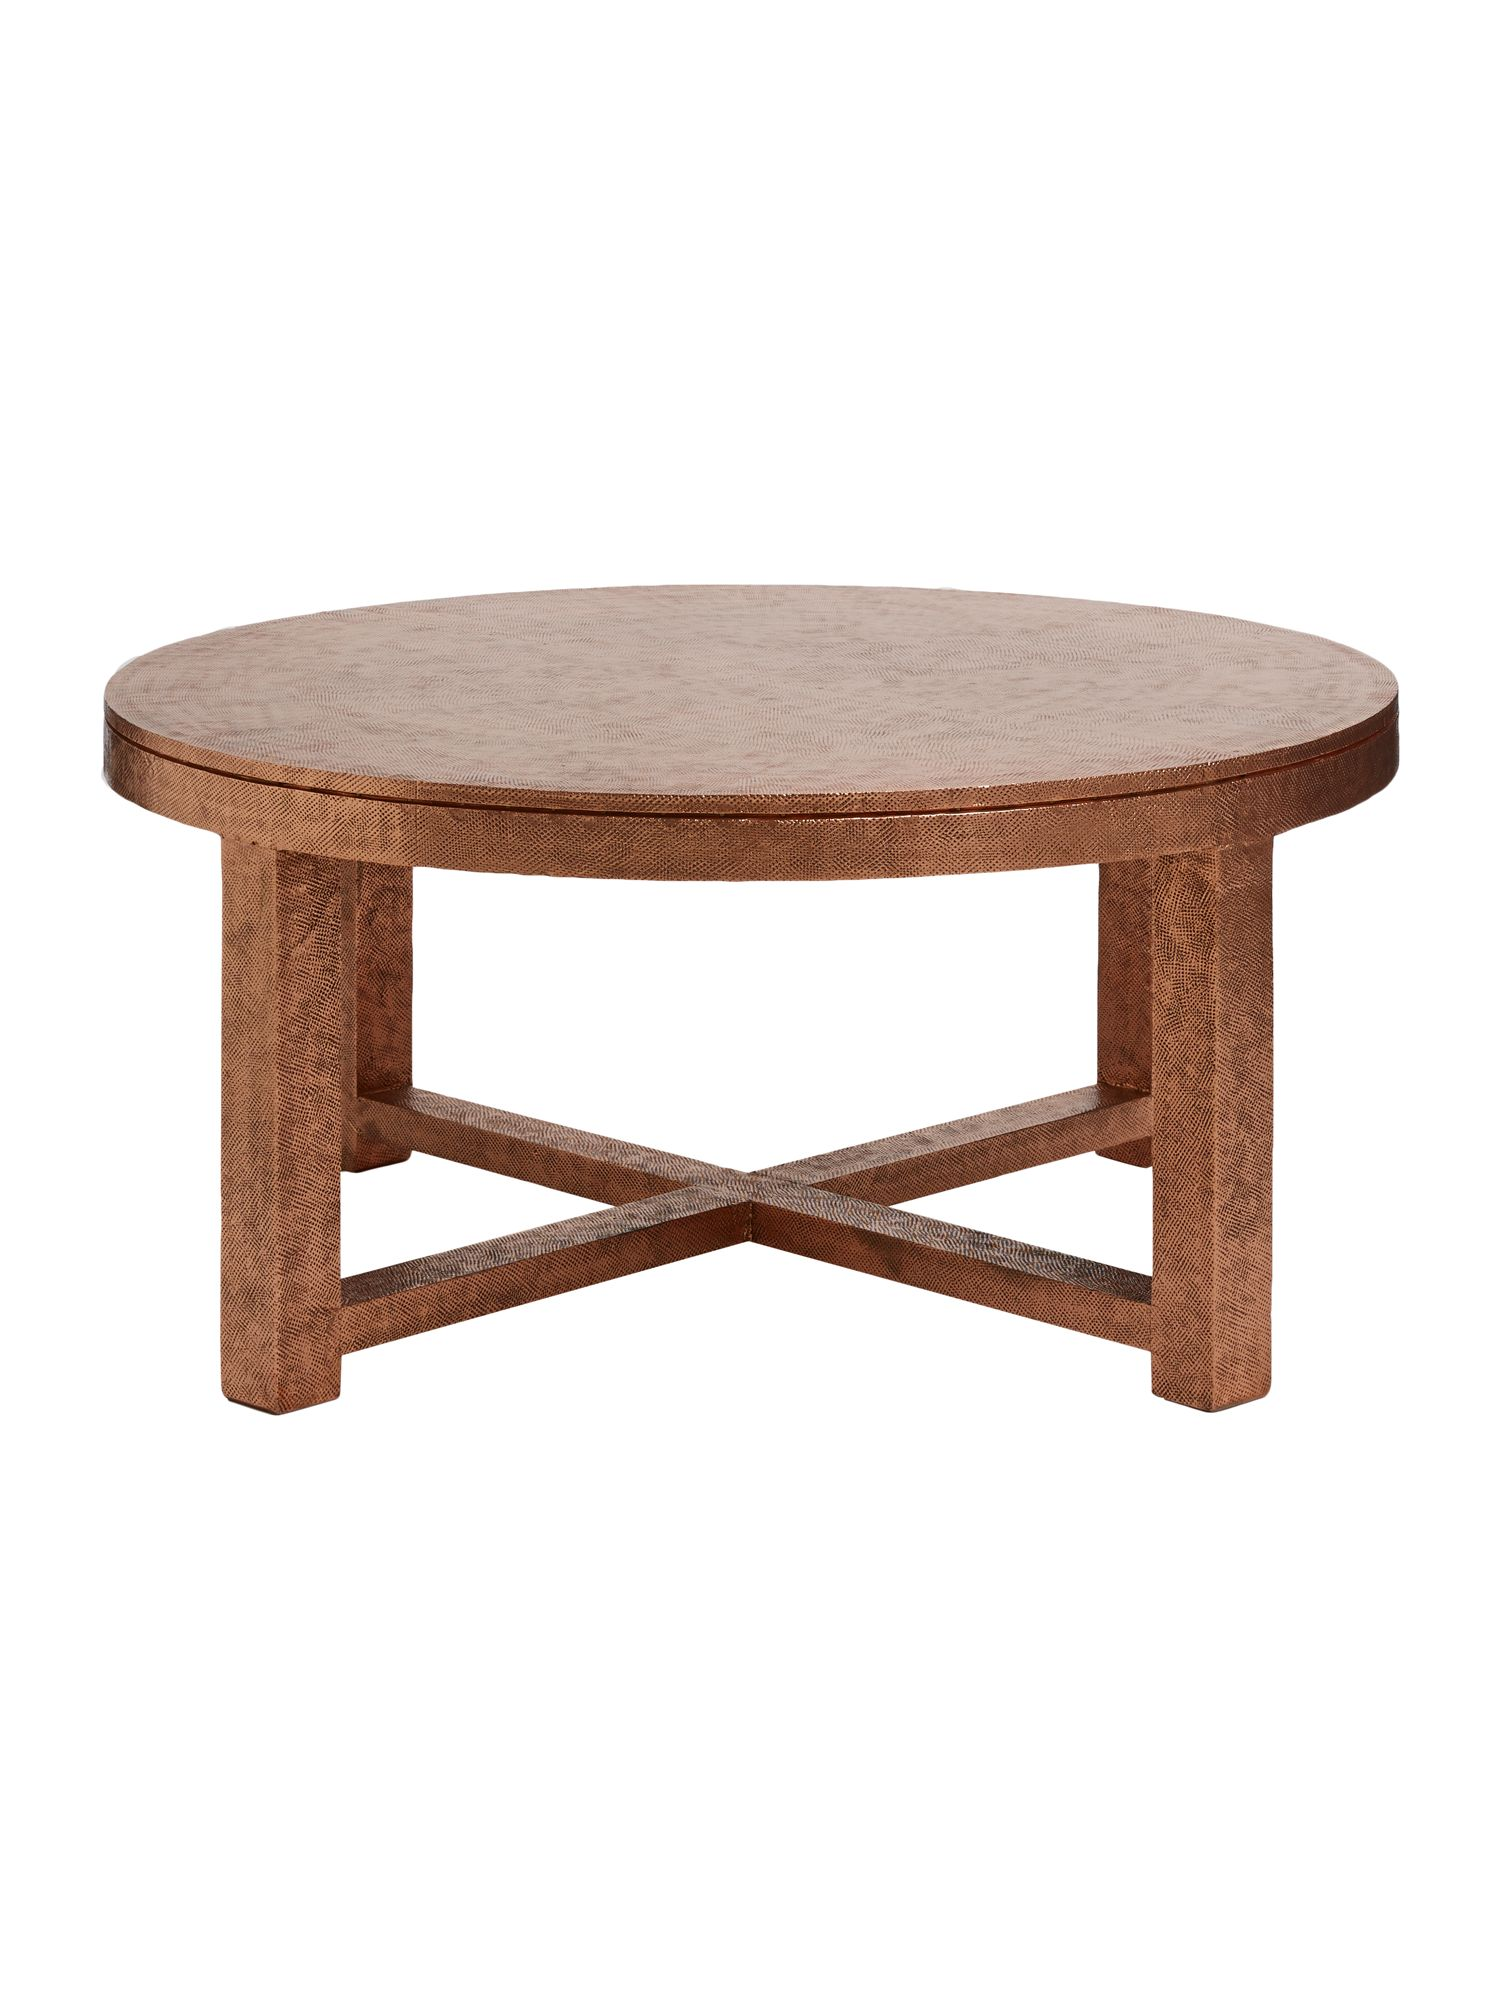 Living by christiane lemieux bodo coffee table house of fraser geotapseo Choice Image